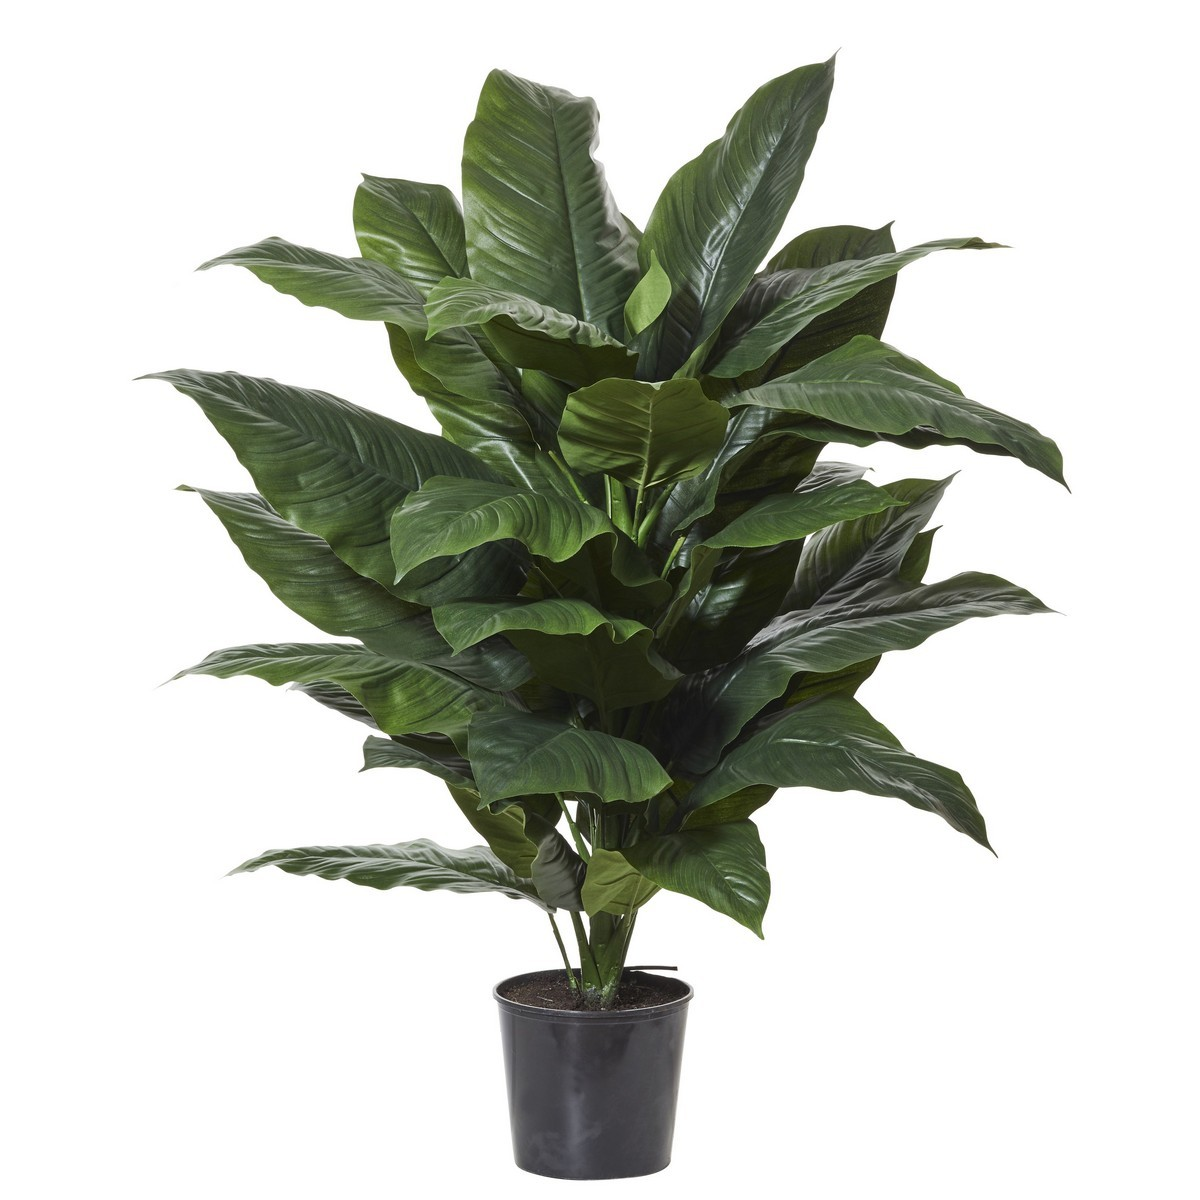 Potted Artificial Giant Spathiphyllum, 128cm